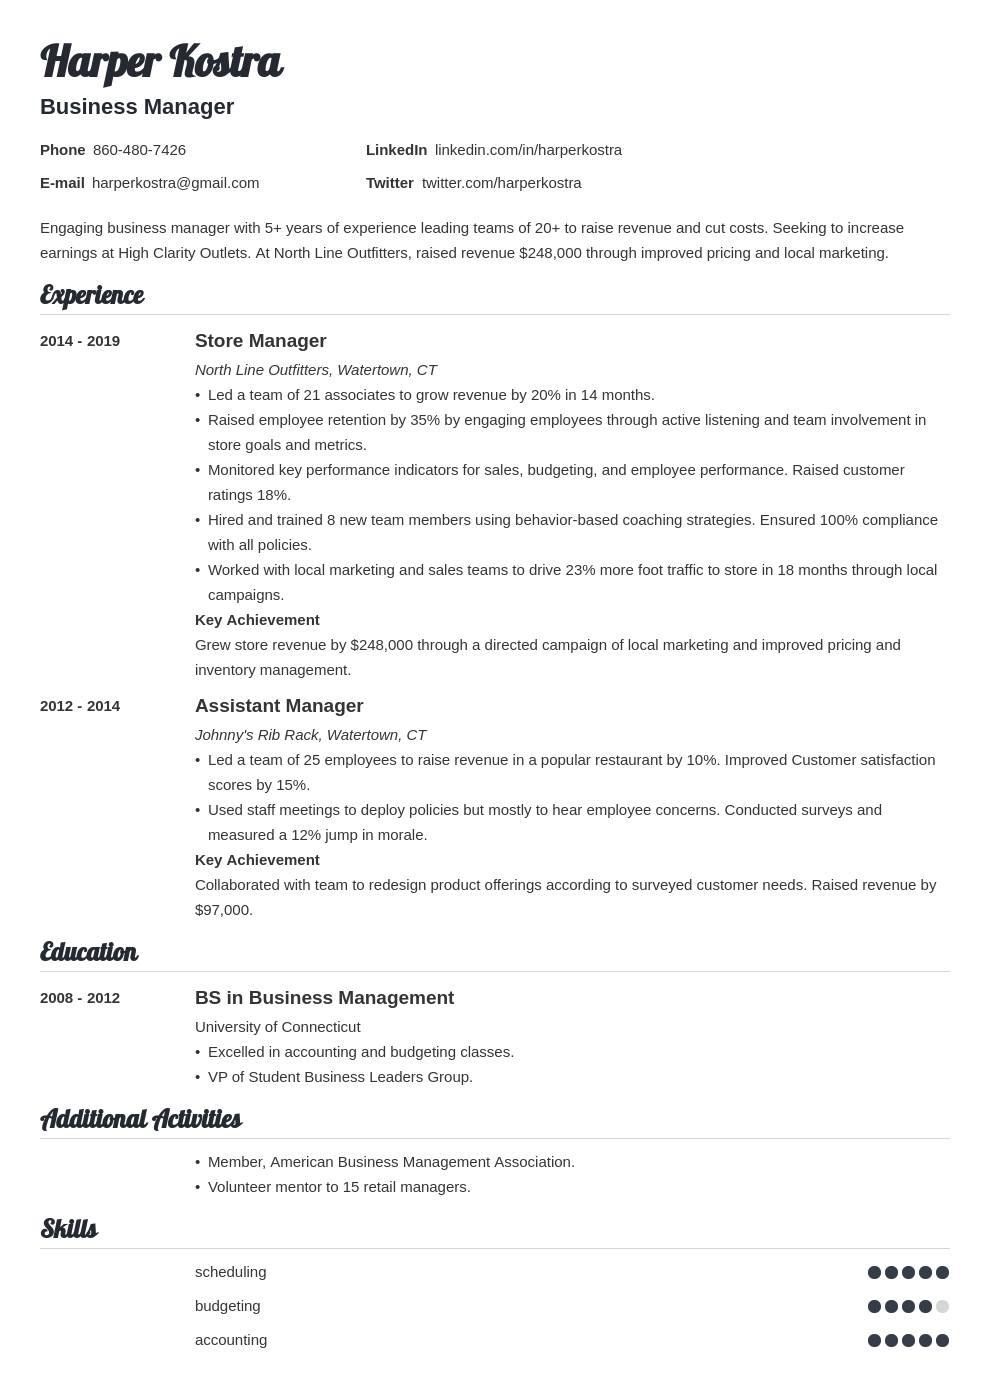 business manager template valera